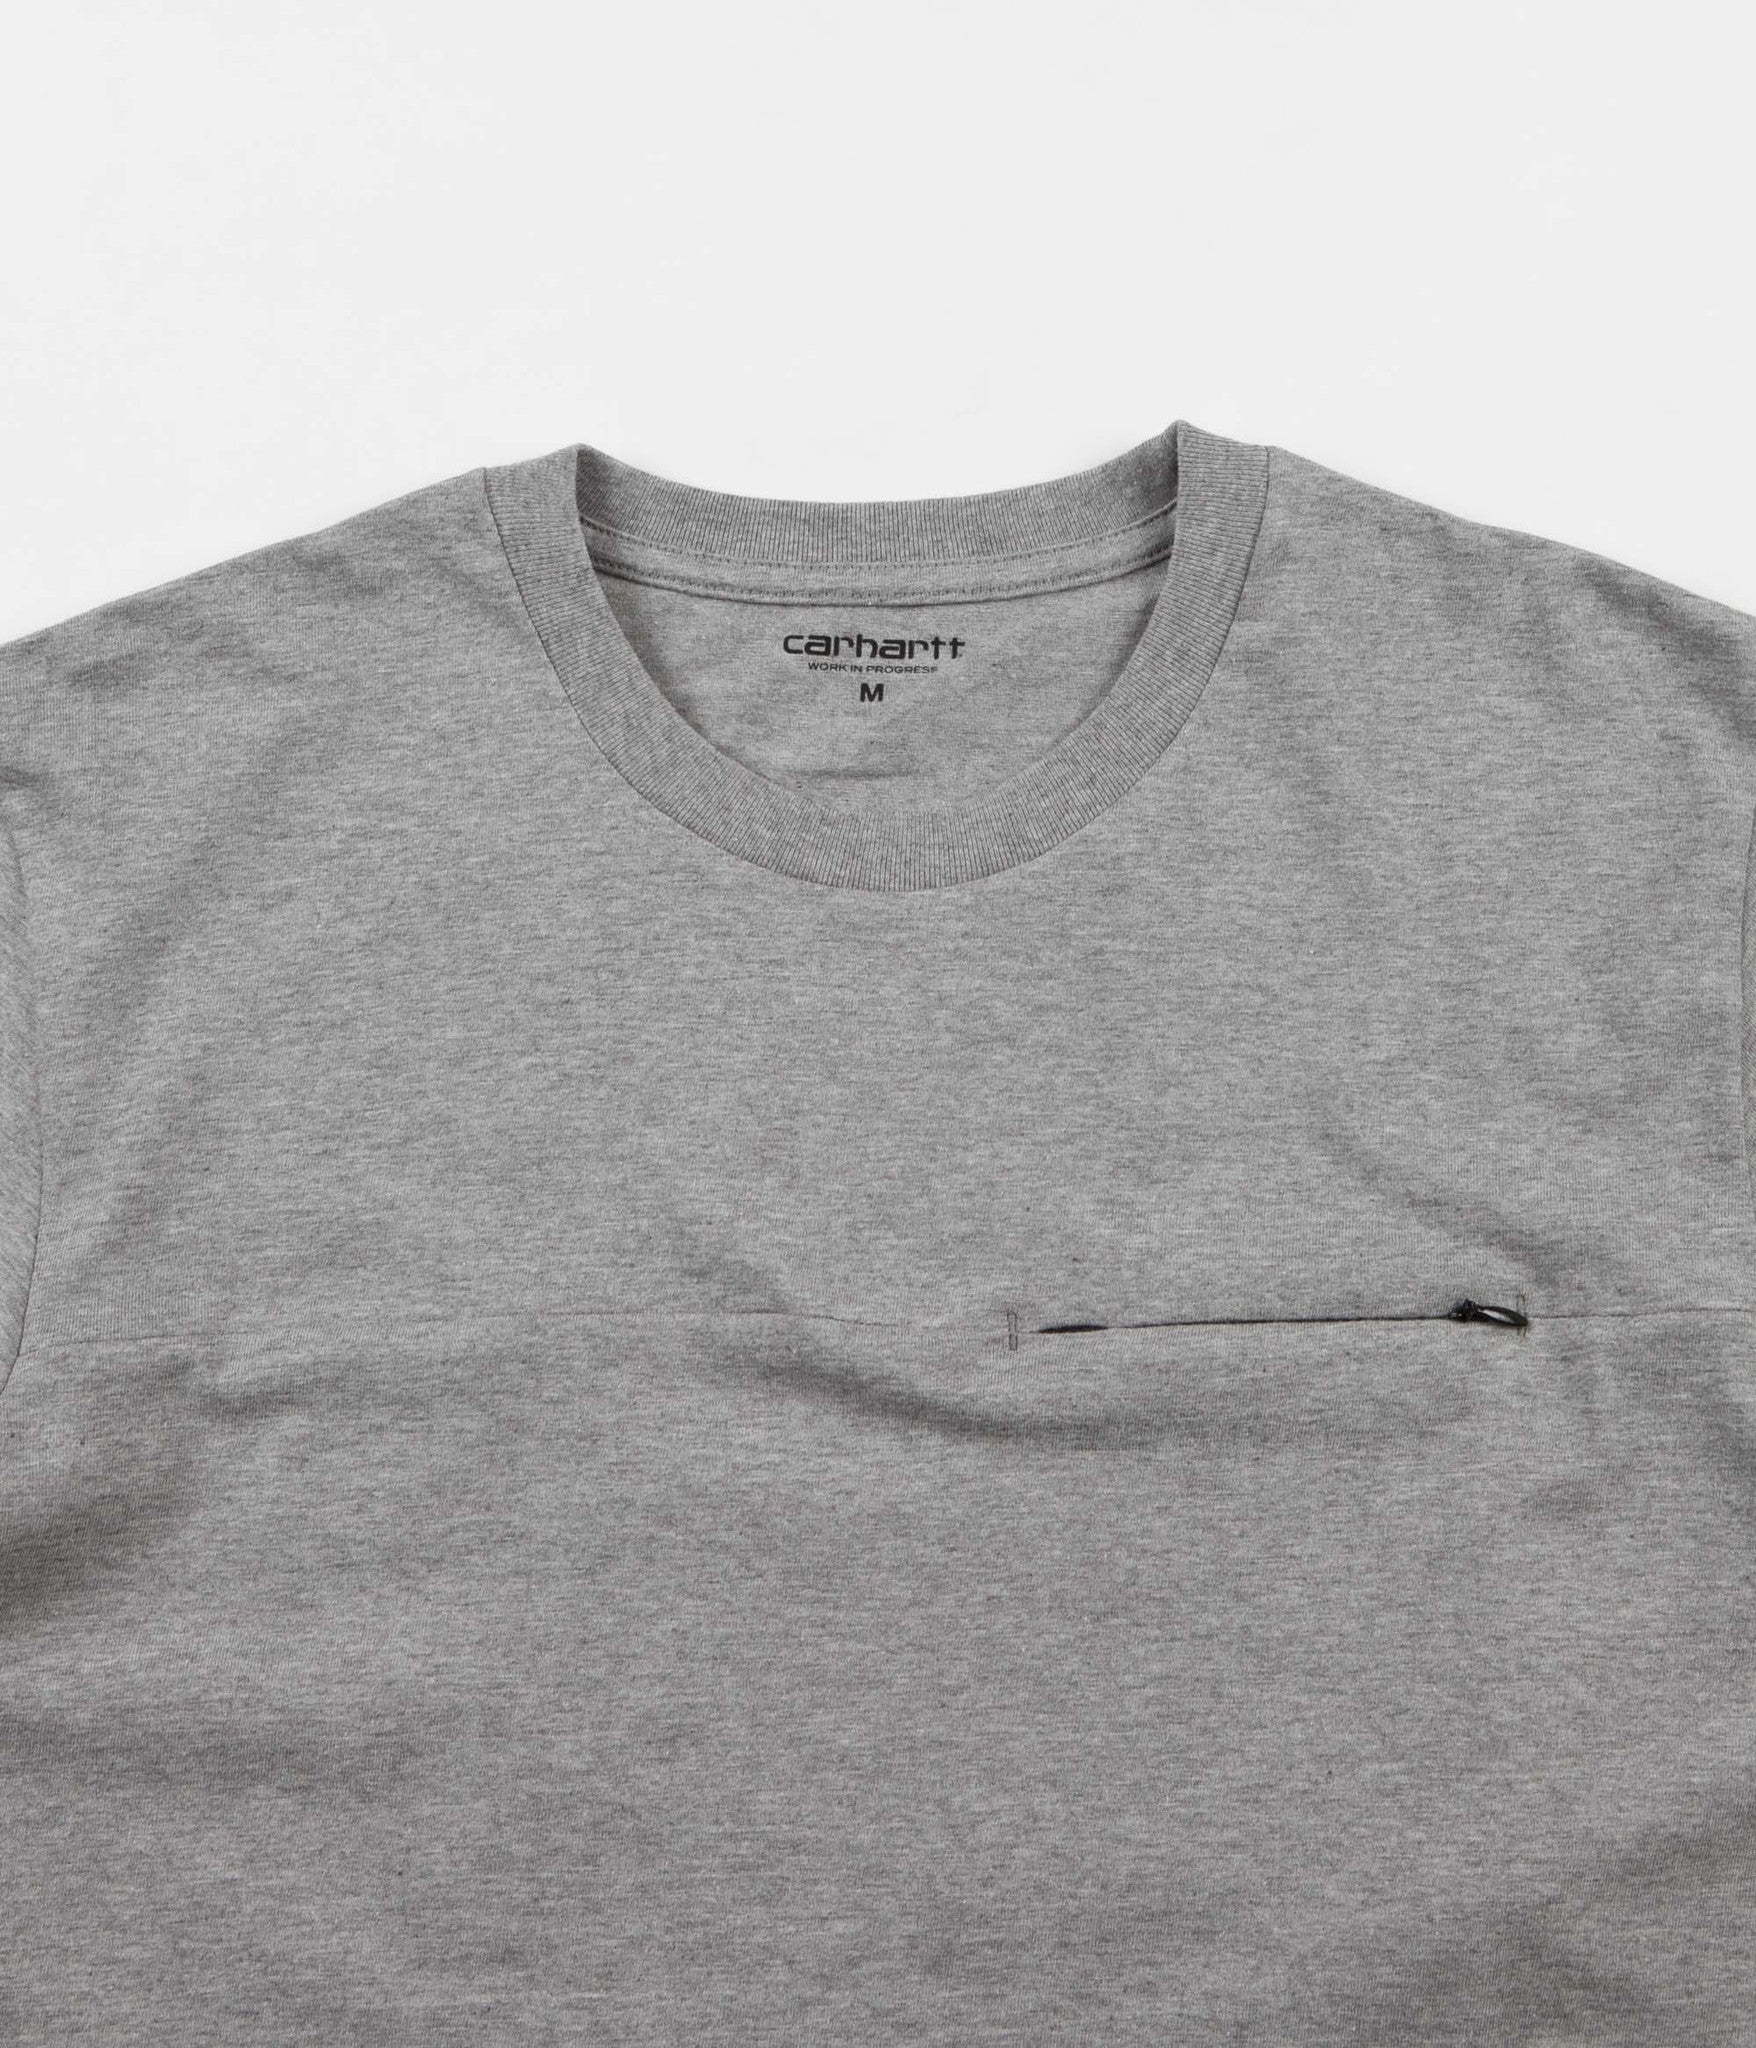 Carhartt Reflective Pocket T-Shirt - Grey Heather